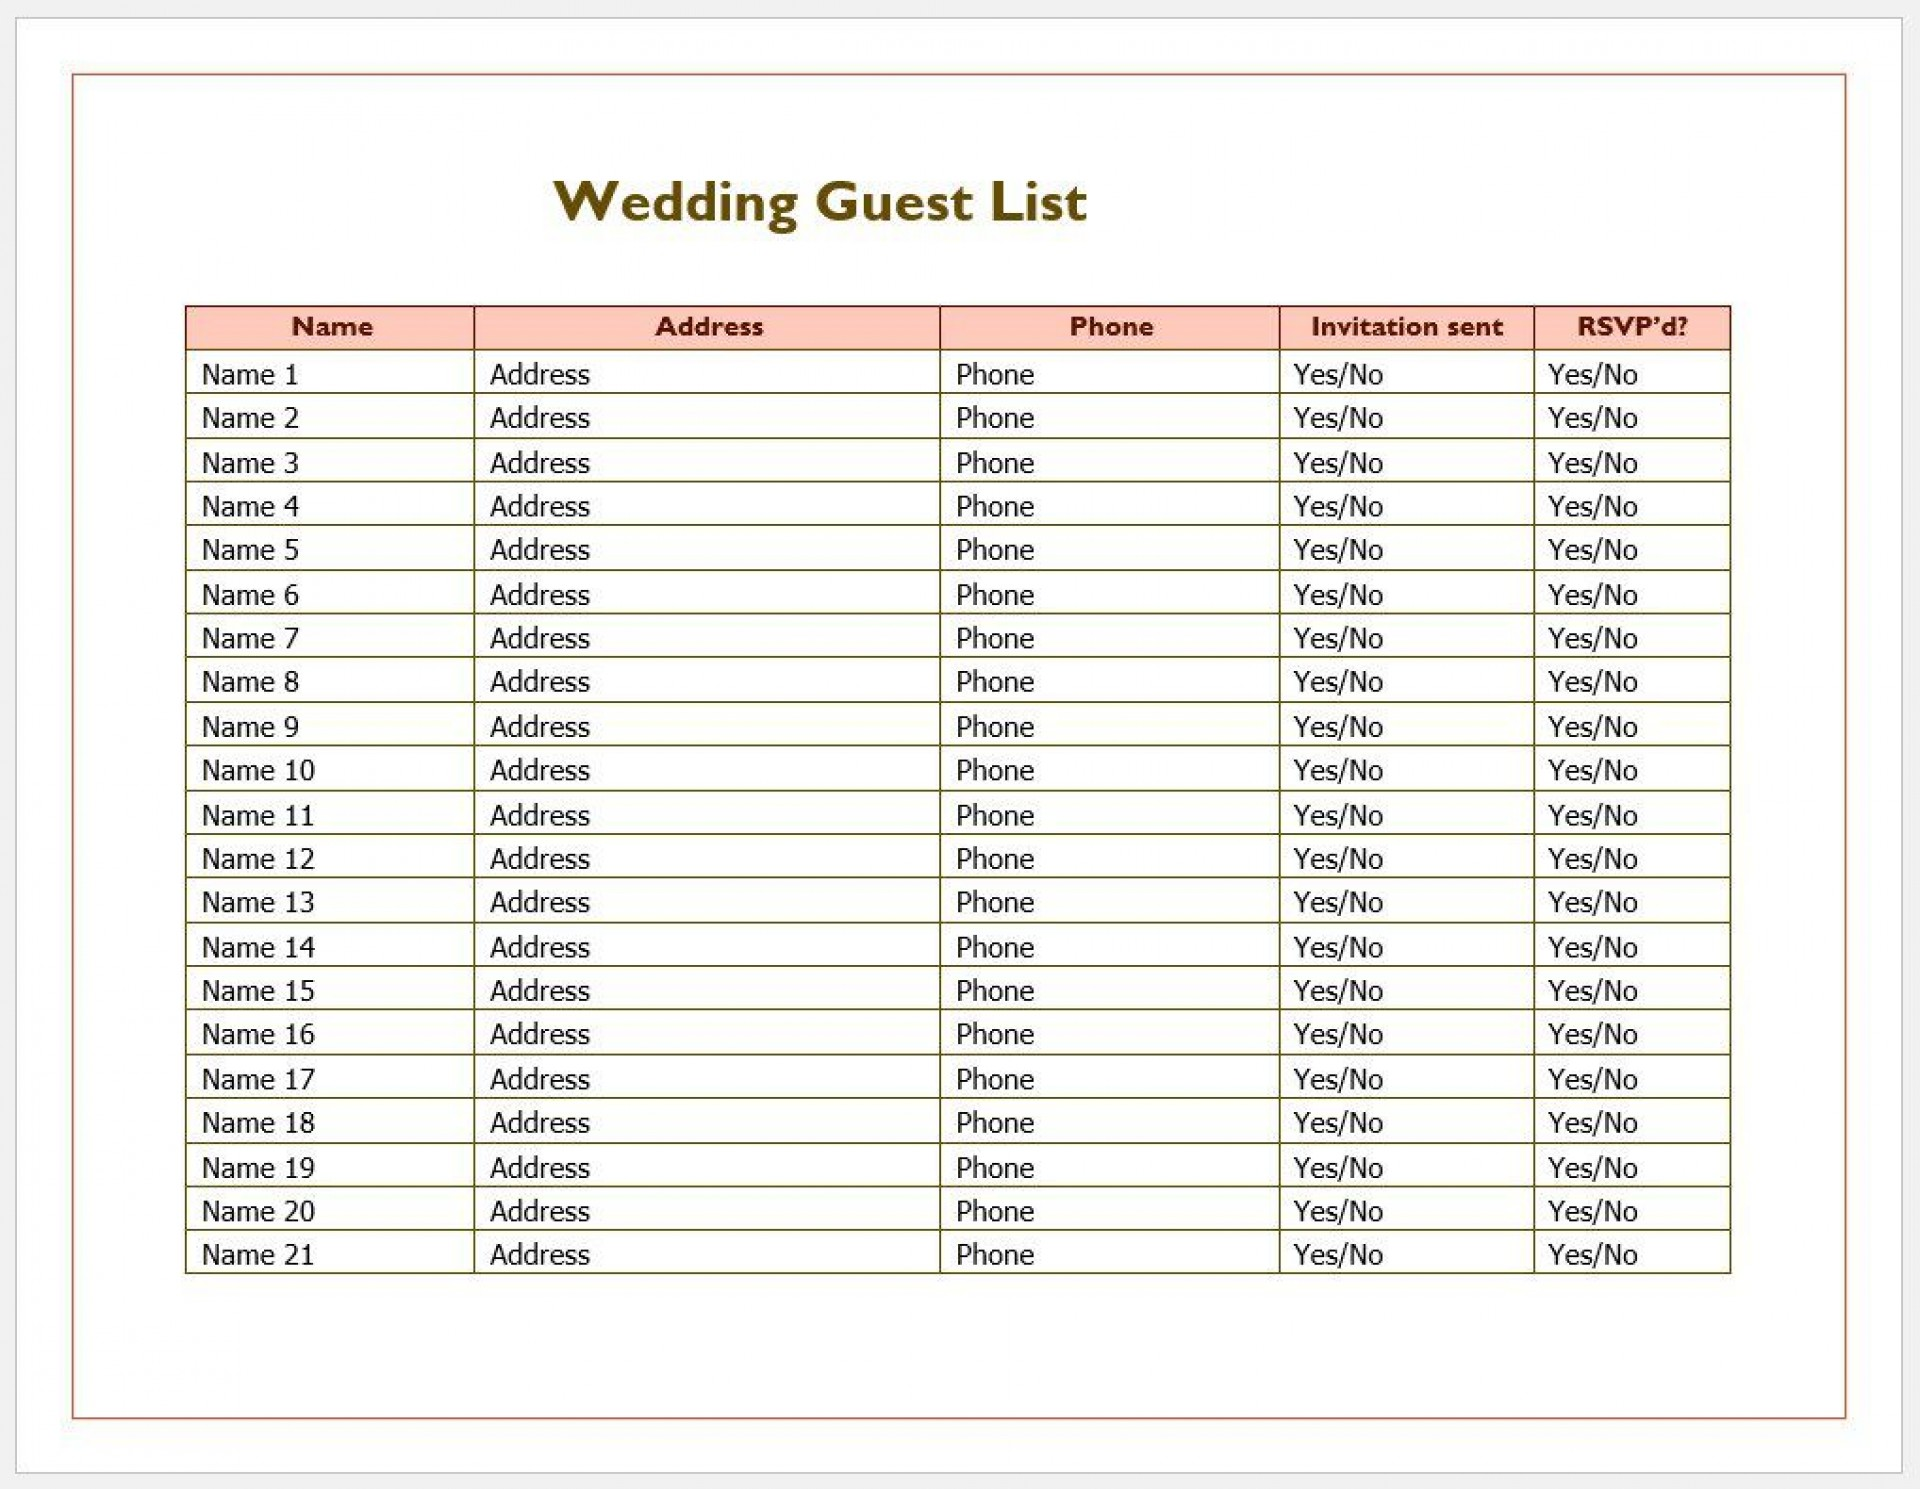 007 Phenomenal Wedding Guest List Excel Spreadsheet Template Image 1920